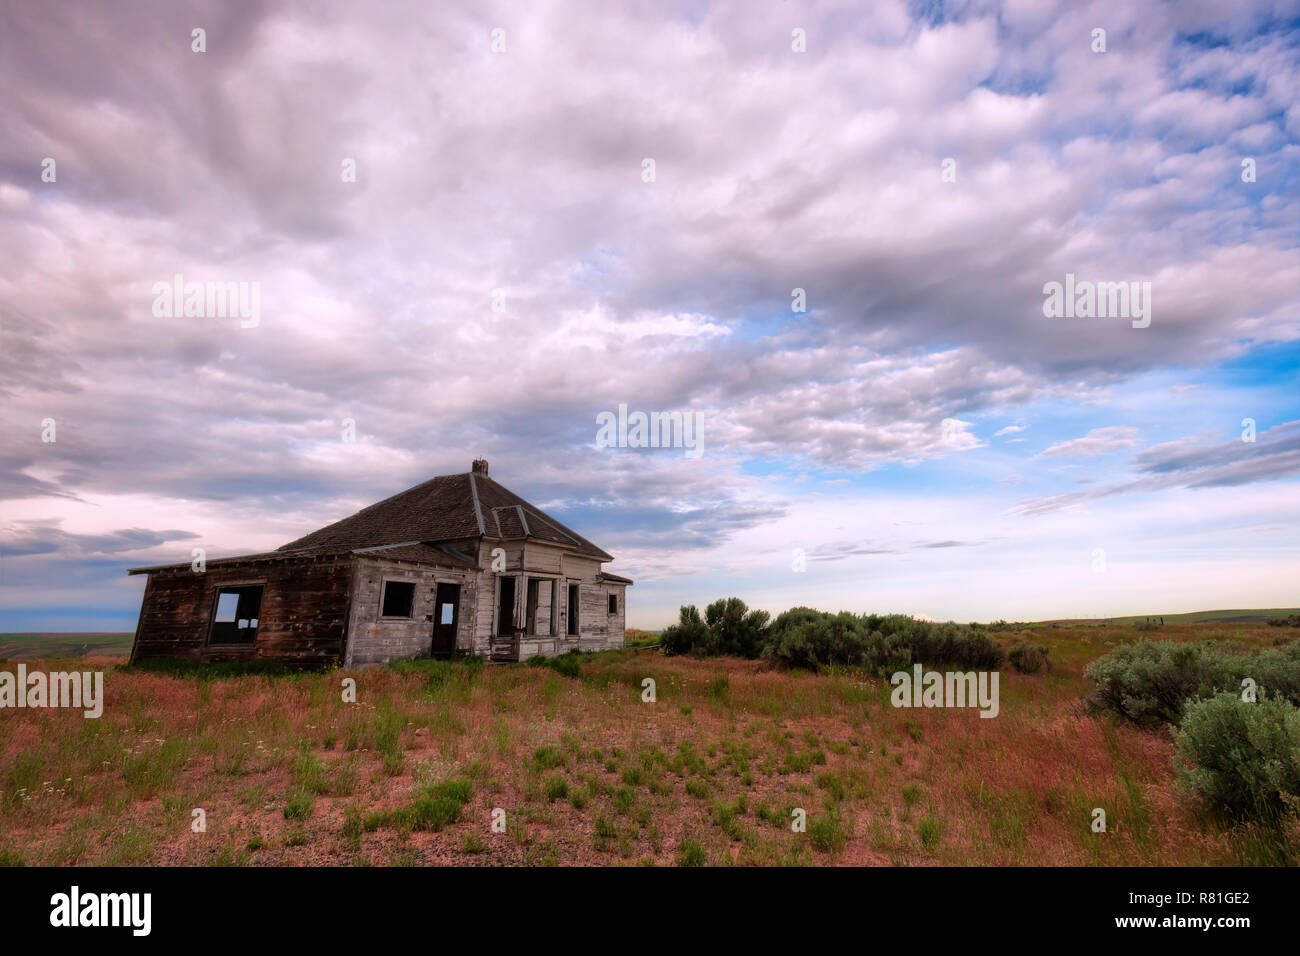 A shell of an abandoned home sits in a high desert landscape dotted with sagebrush under stormy skies. - Stock Image